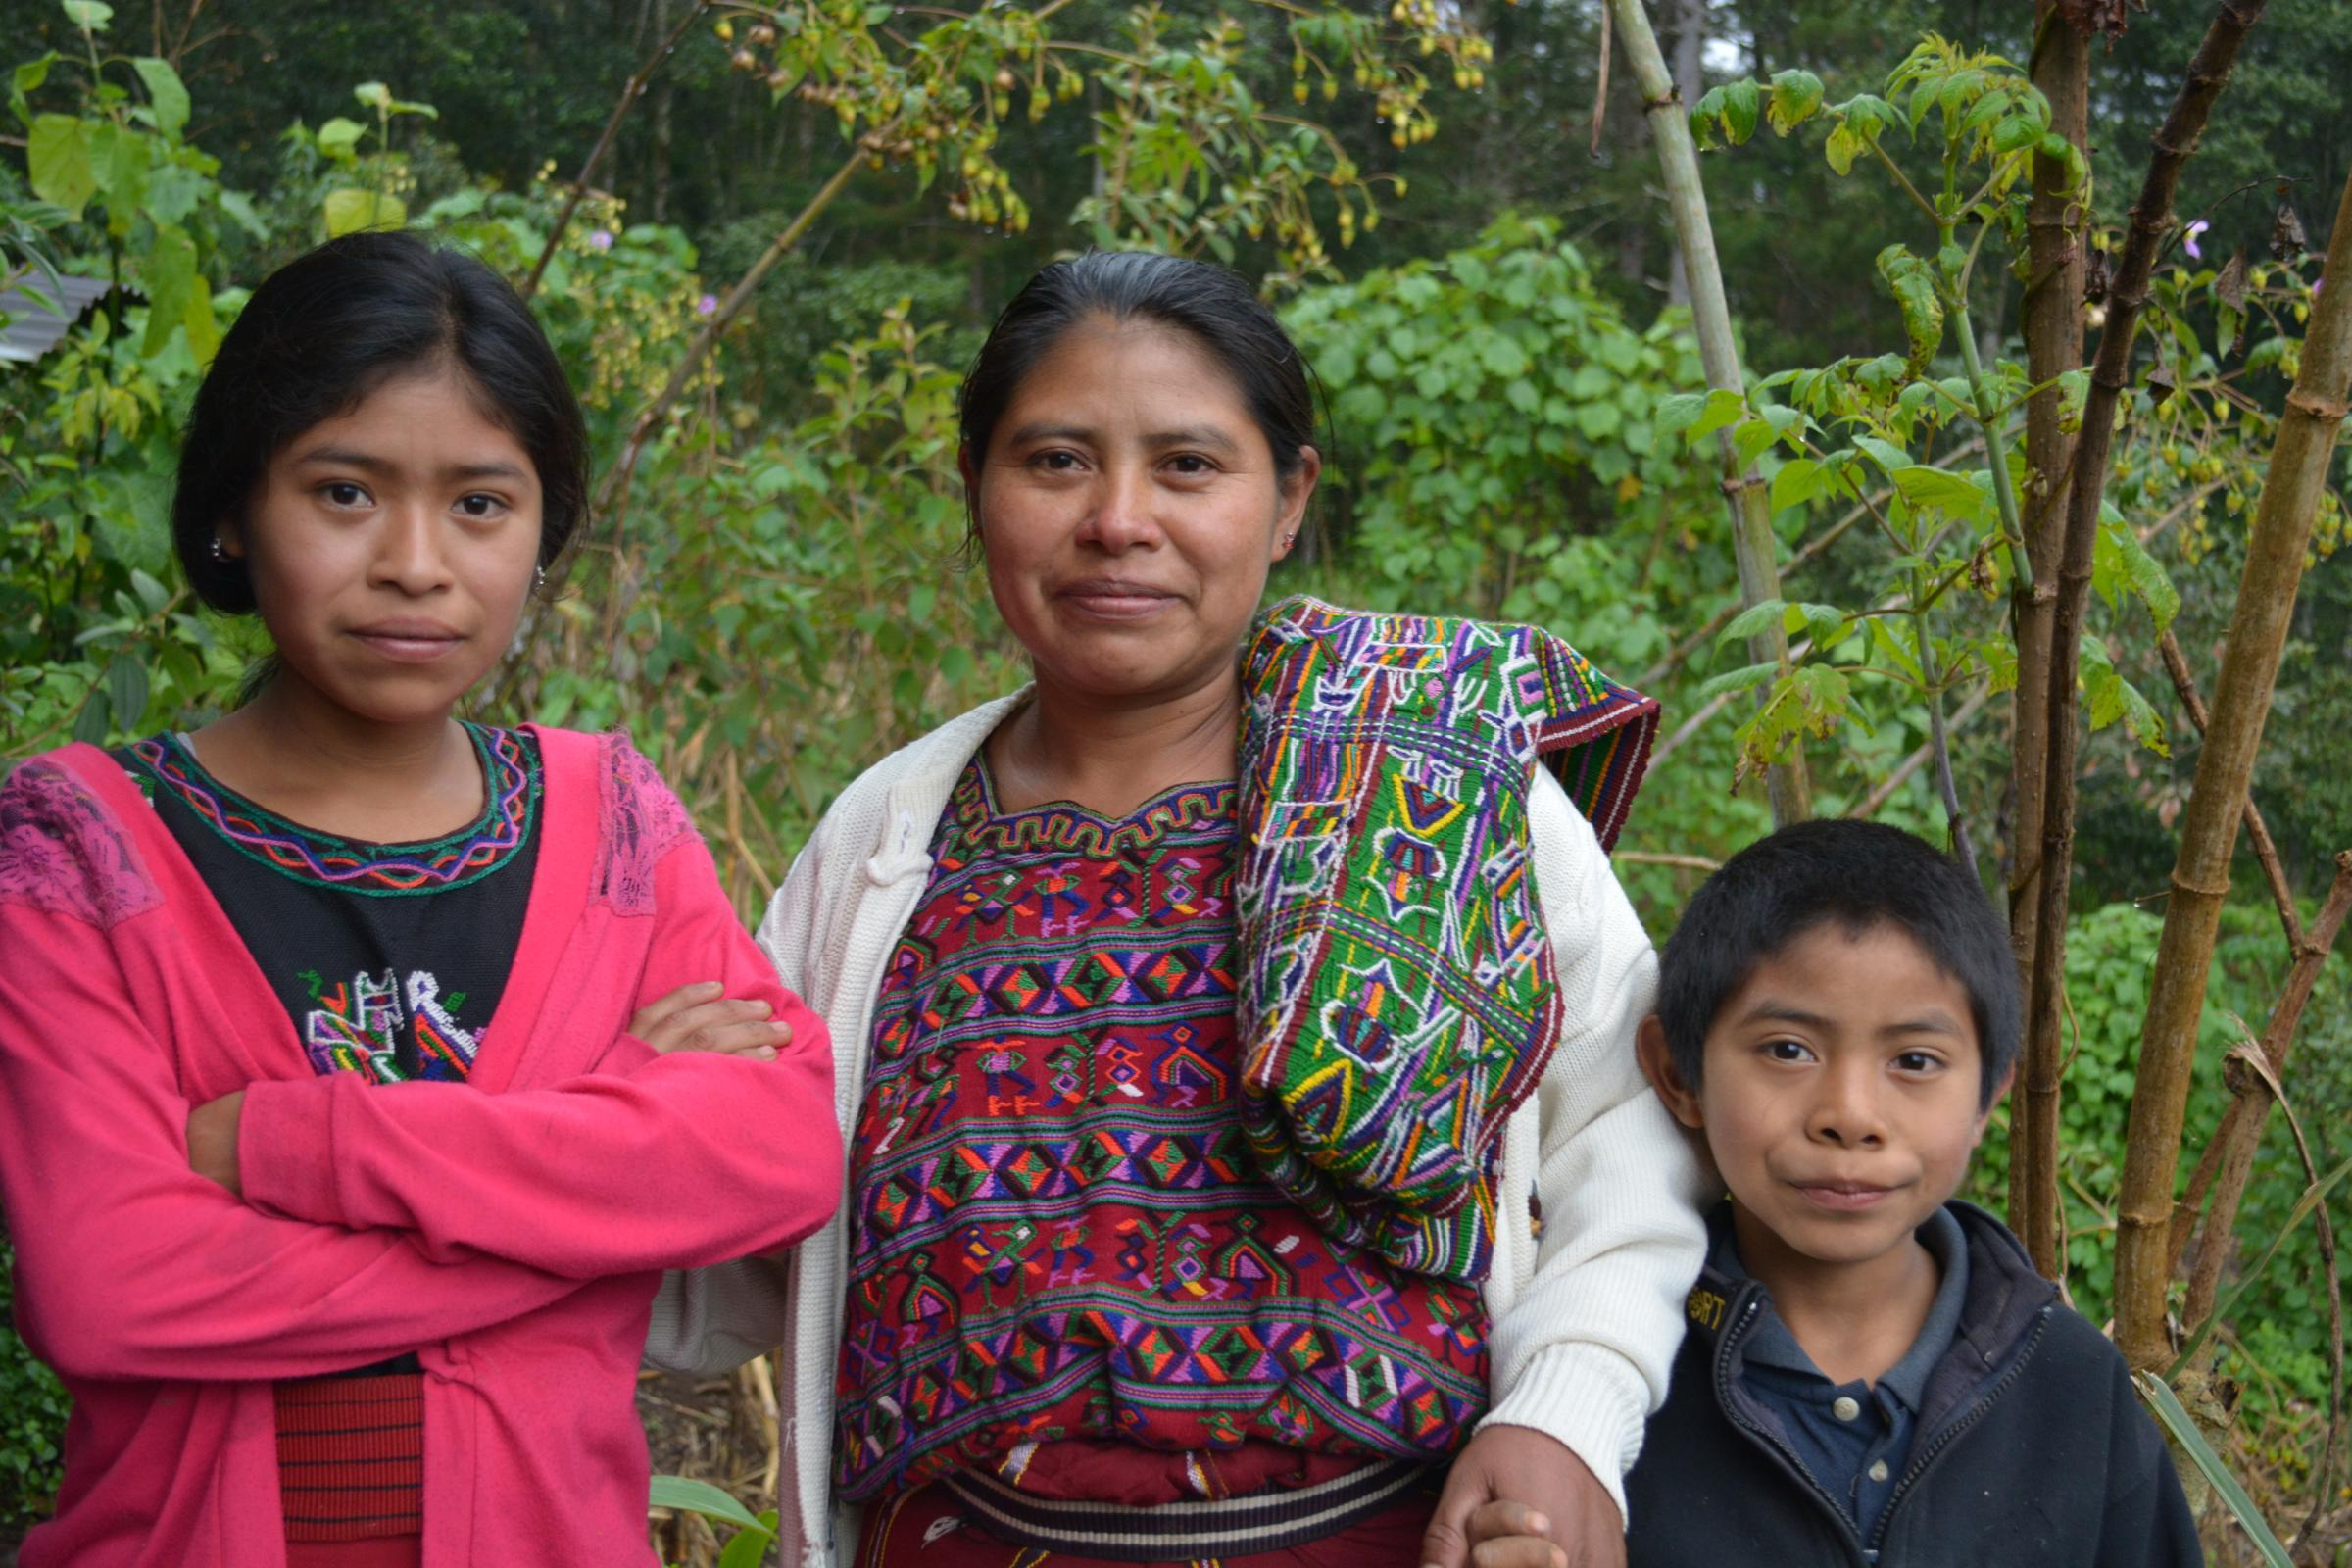 Guatemala - Woman stands with two children by her side.